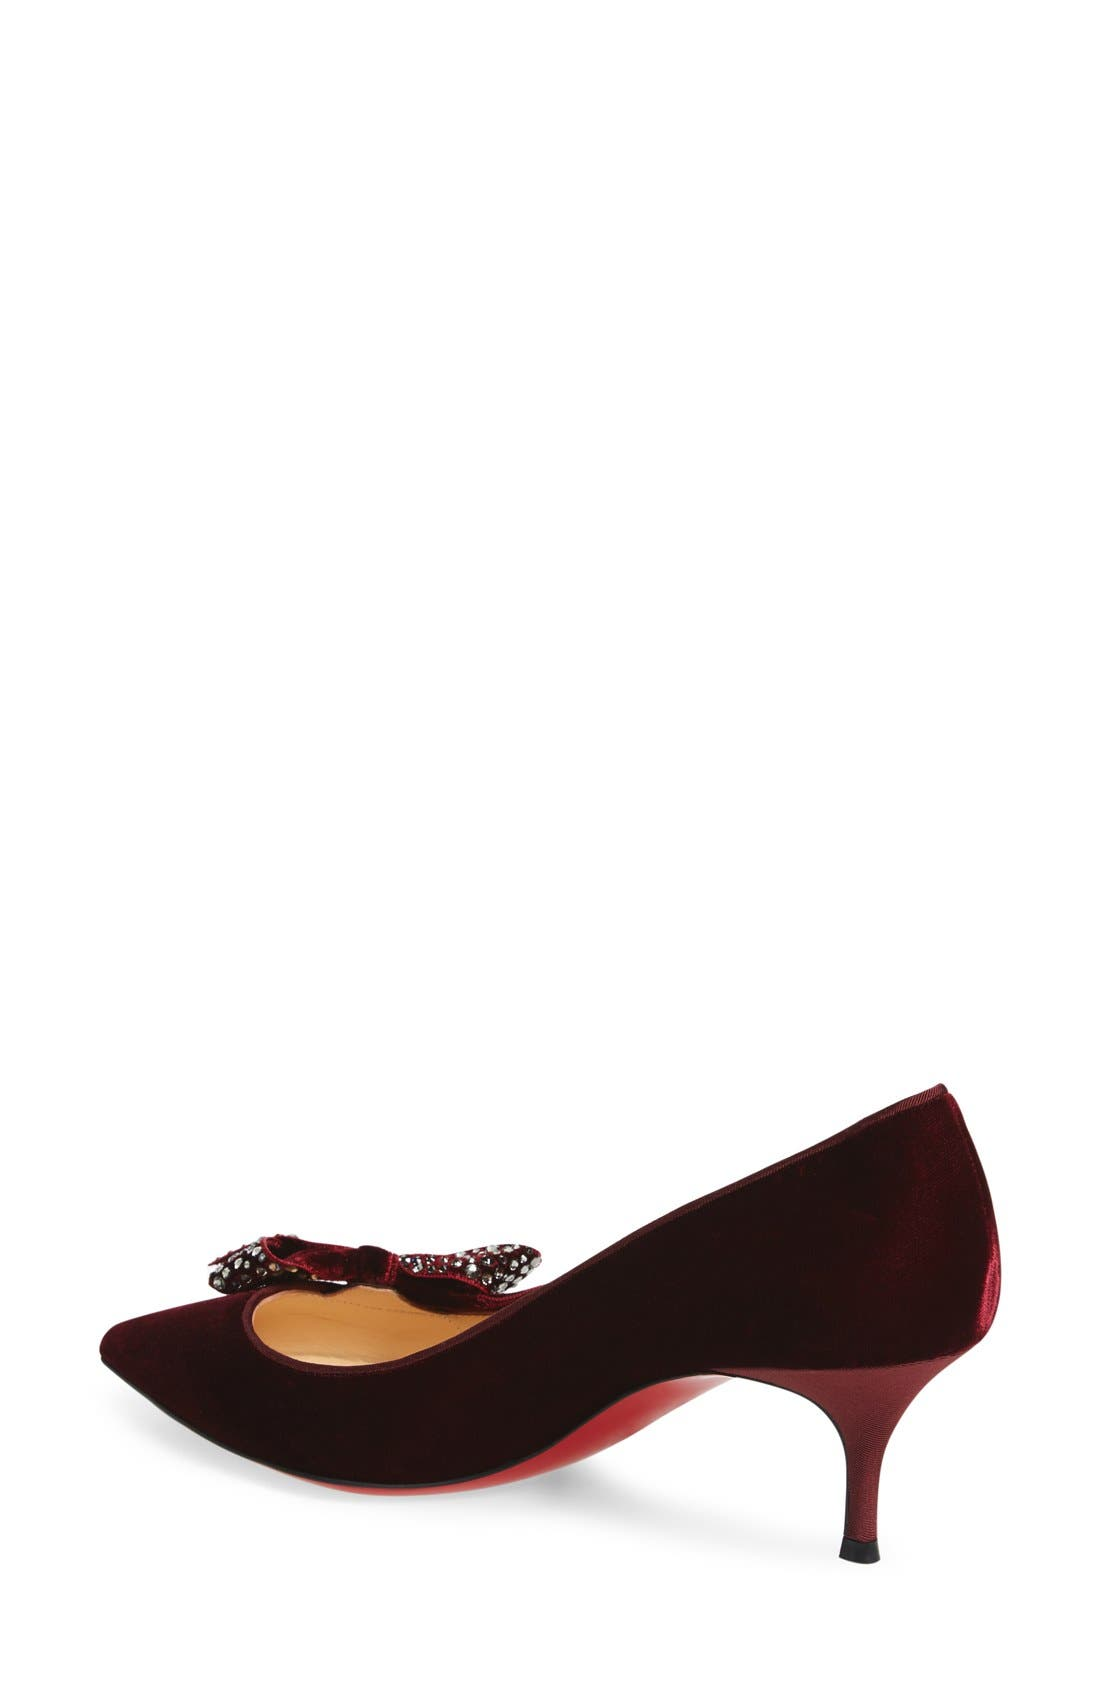 Alternate Image 2  - Christian Louboutin 'Mlle Menule' Embellished Bow Kitten Heel Pump